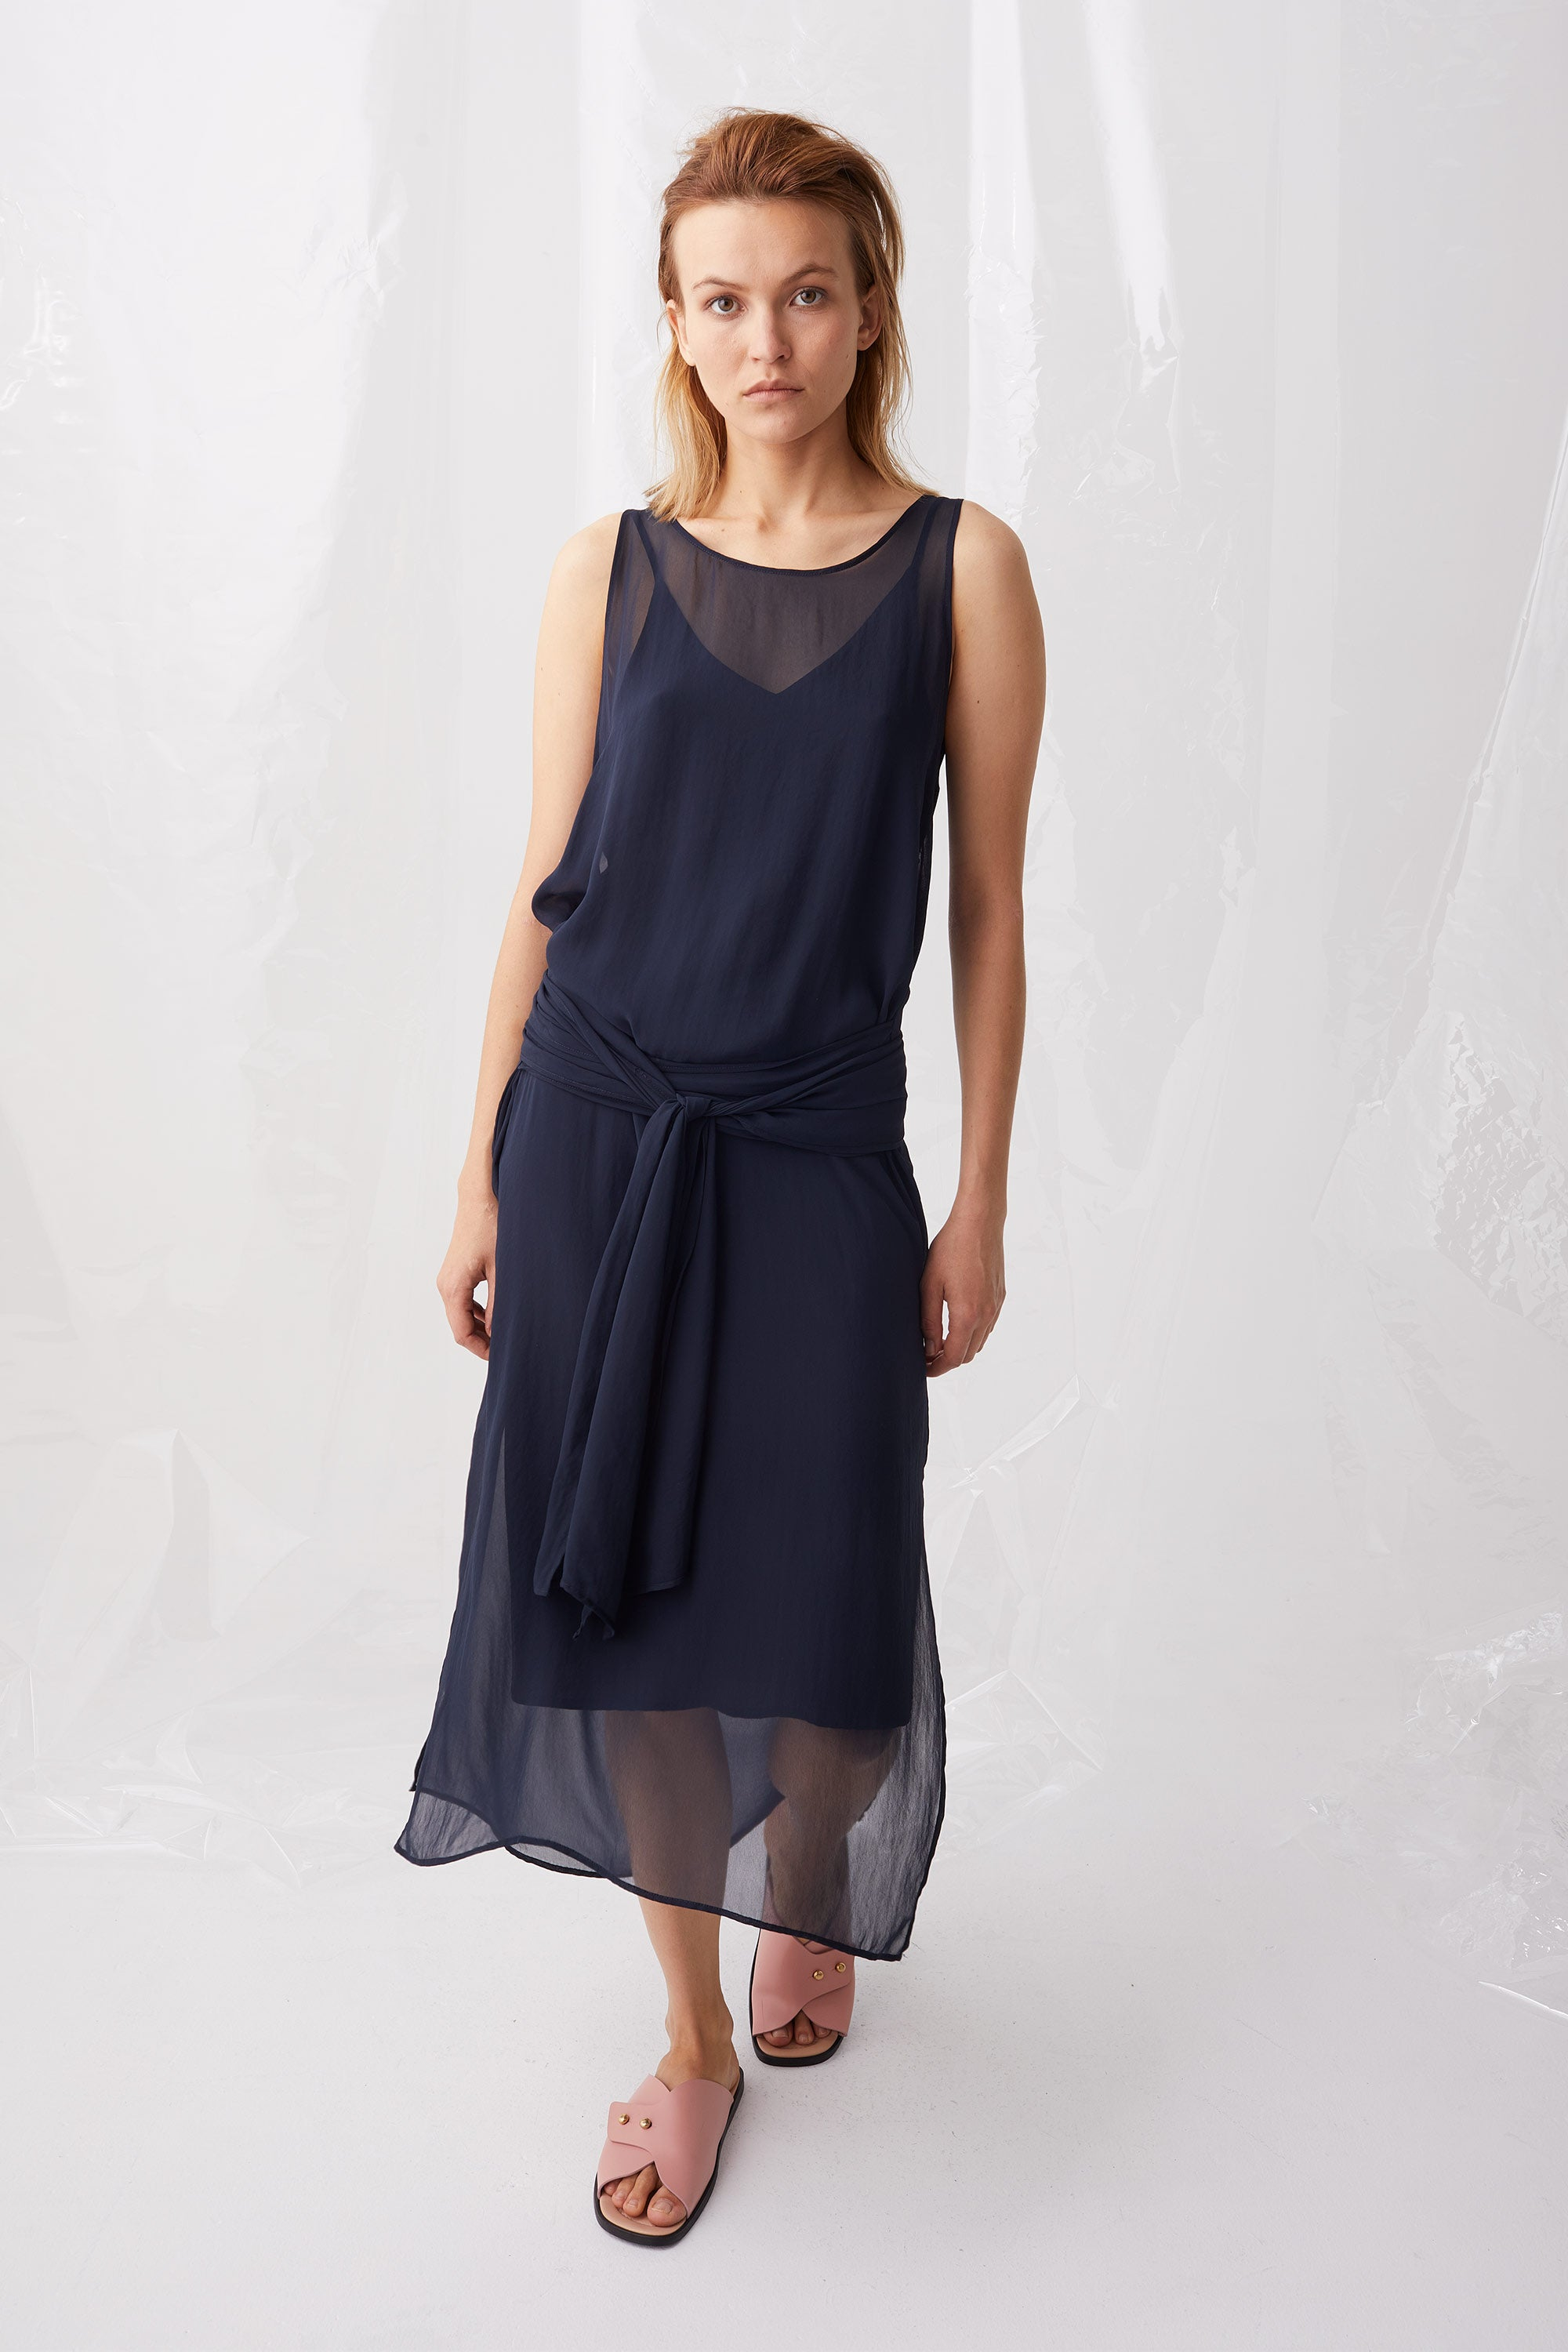 Ricochet NZ Fashion Designer Clothing Boutique SS18 Numazu Dress Midnight Chiffon Made in NZ